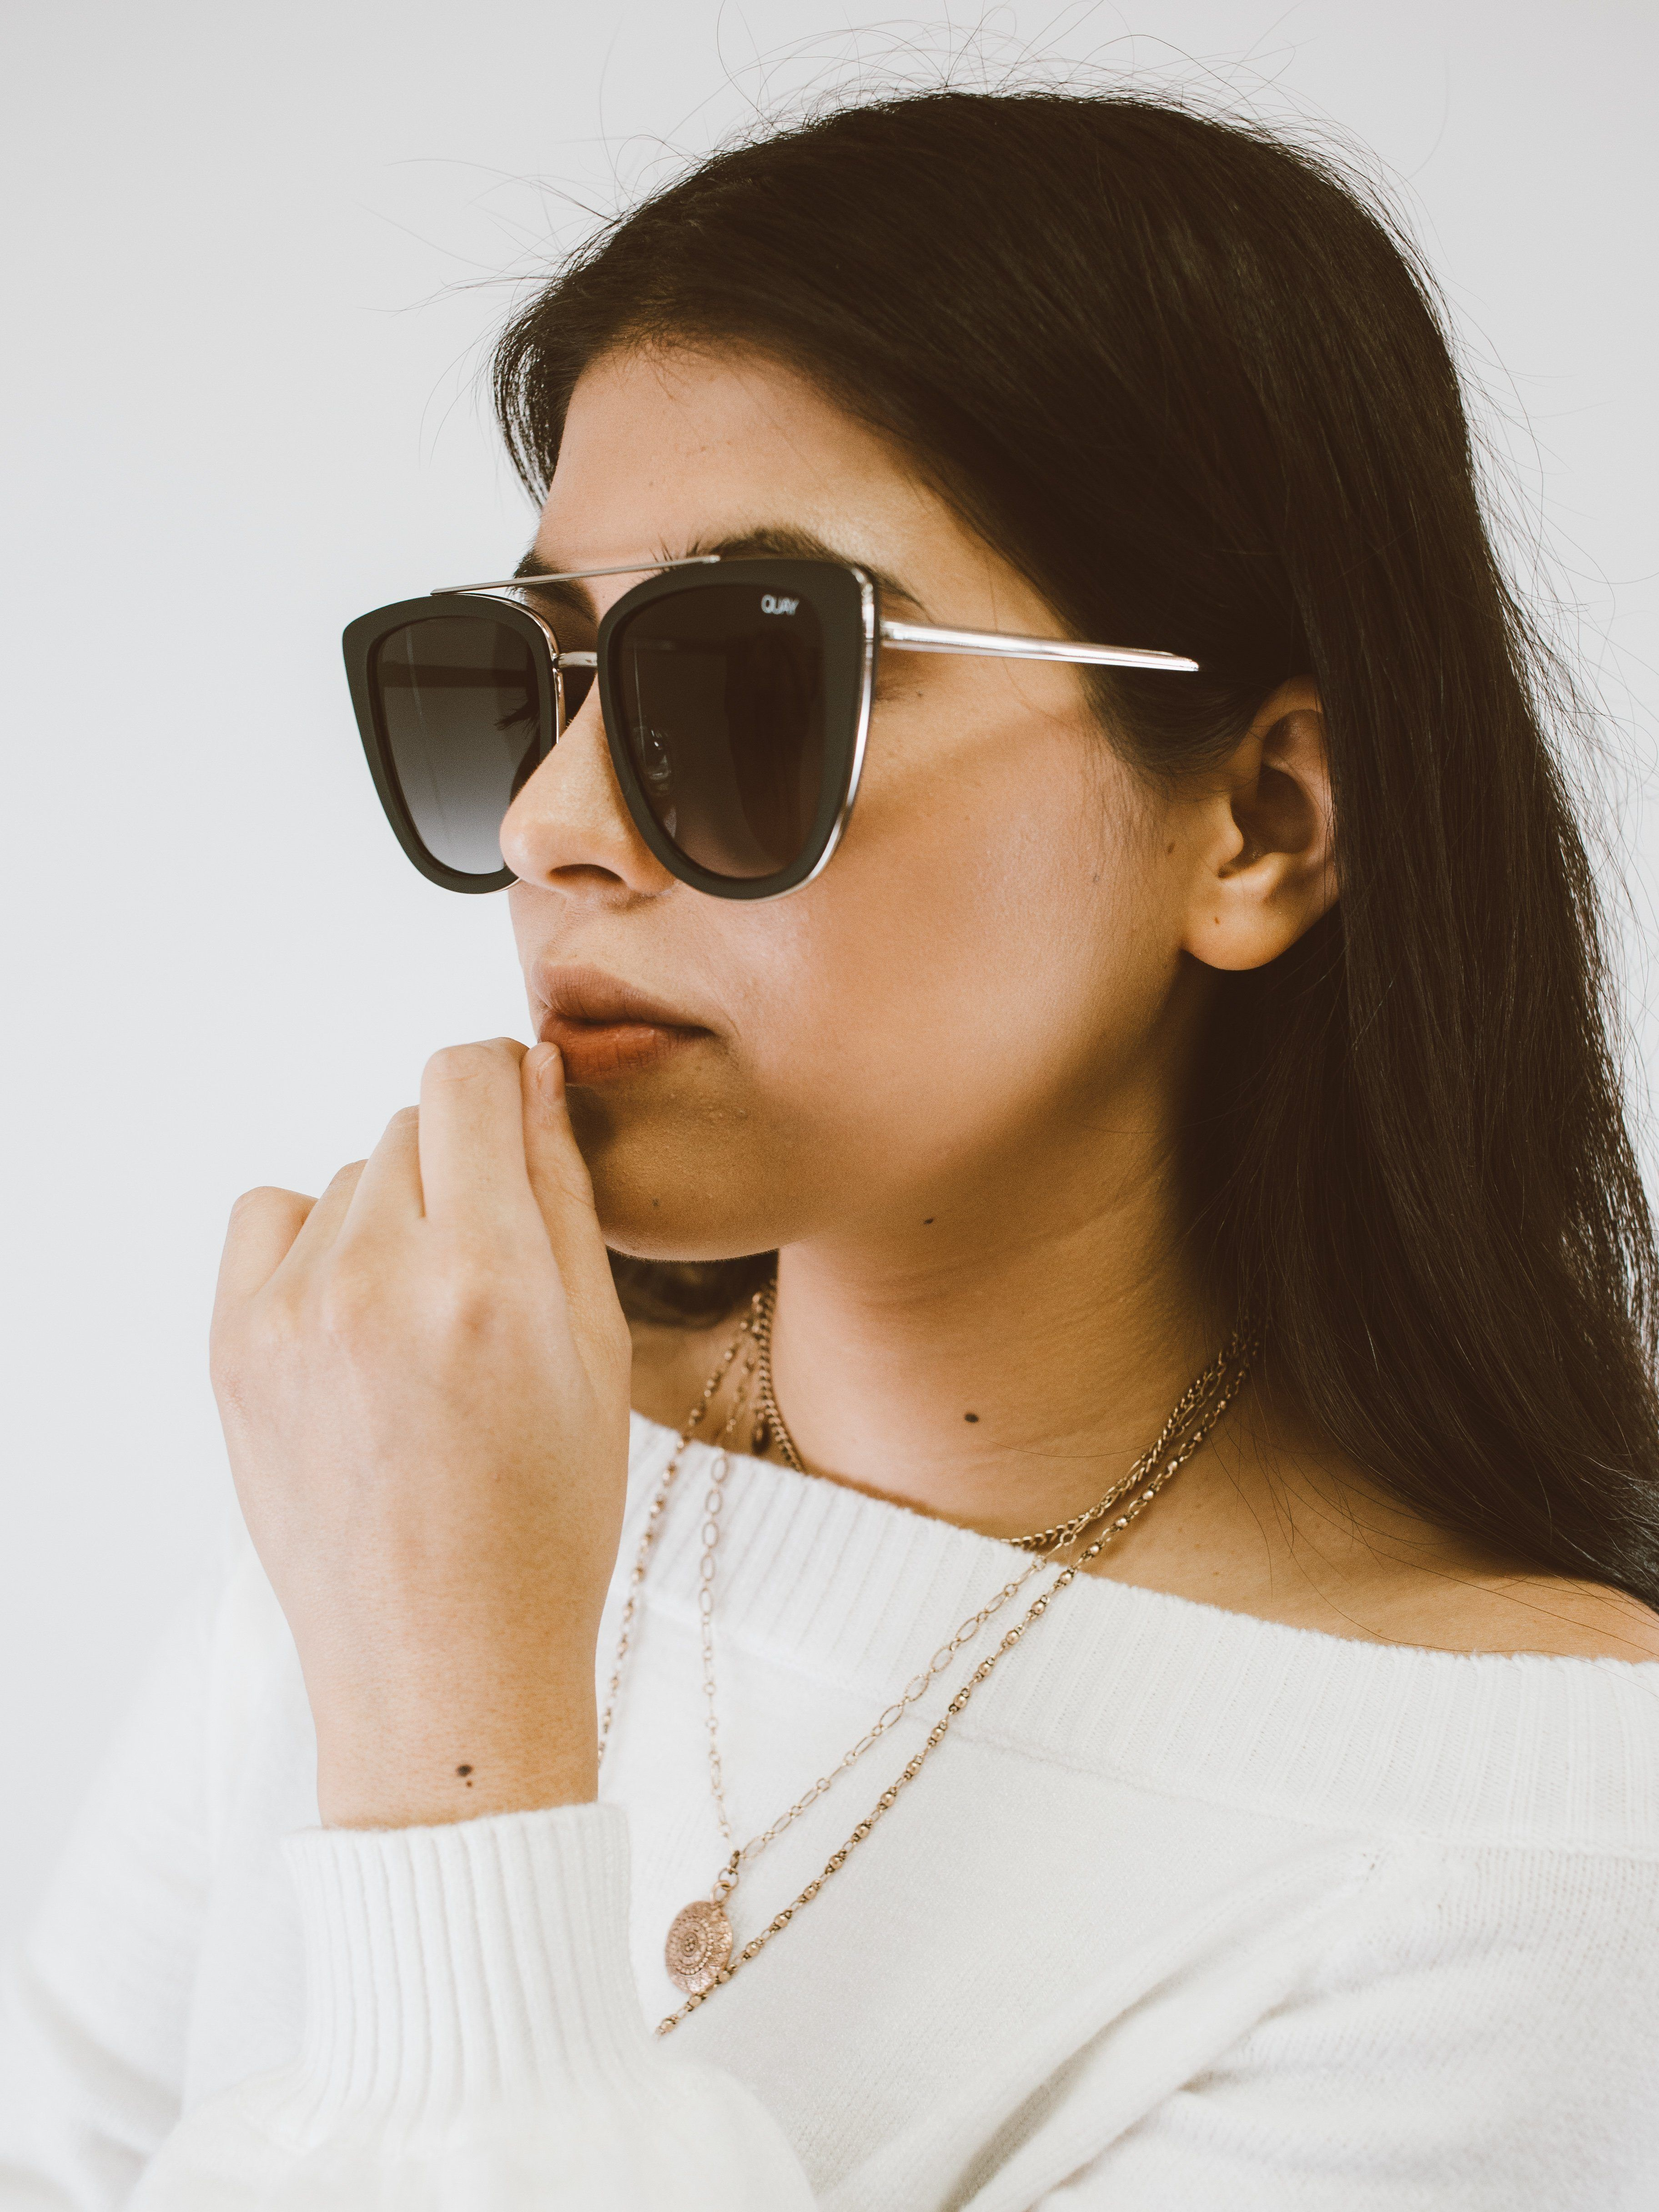 French Kiss Quay Sunnies   Products   Pinterest   Sunnies, French ... c79dfb275a